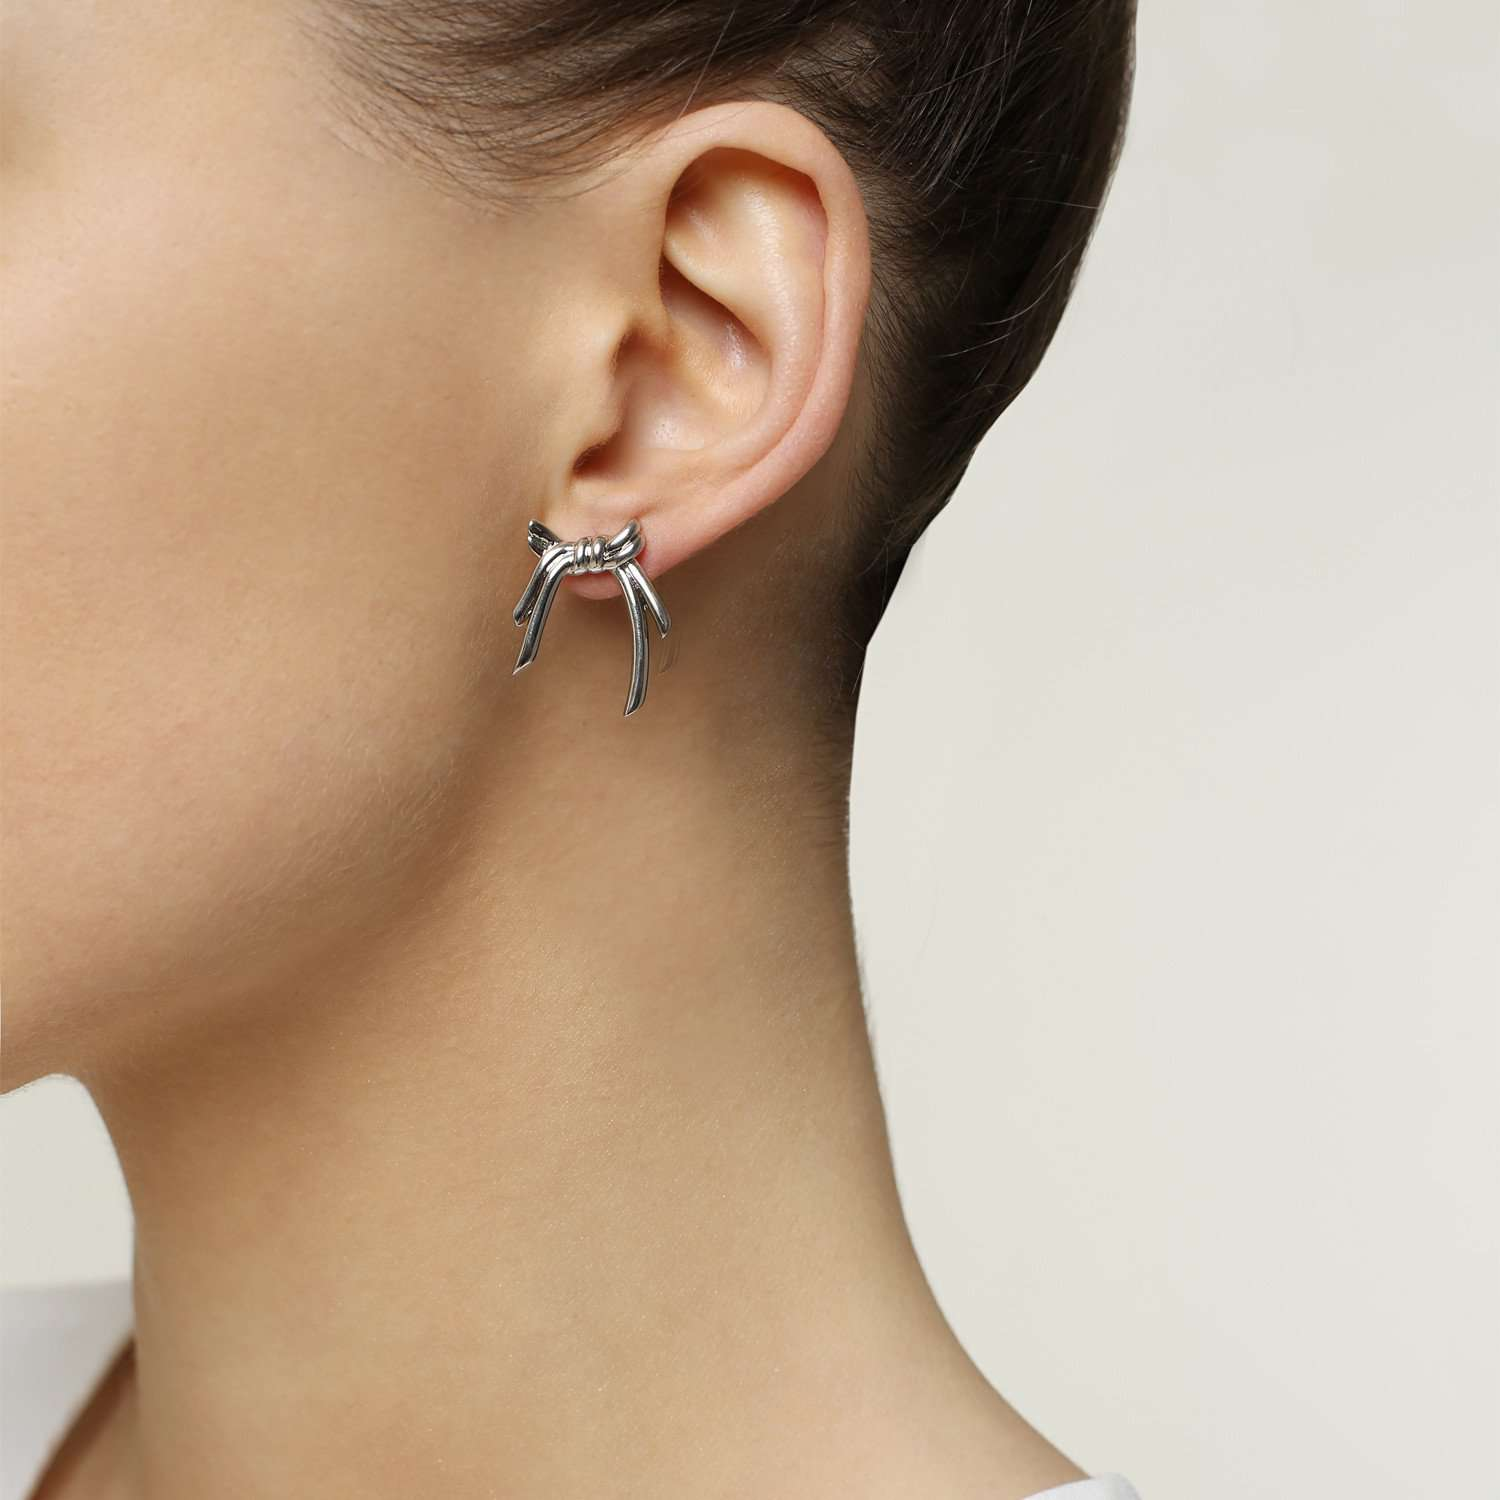 Find out our  white rhodium plated metal earrings.